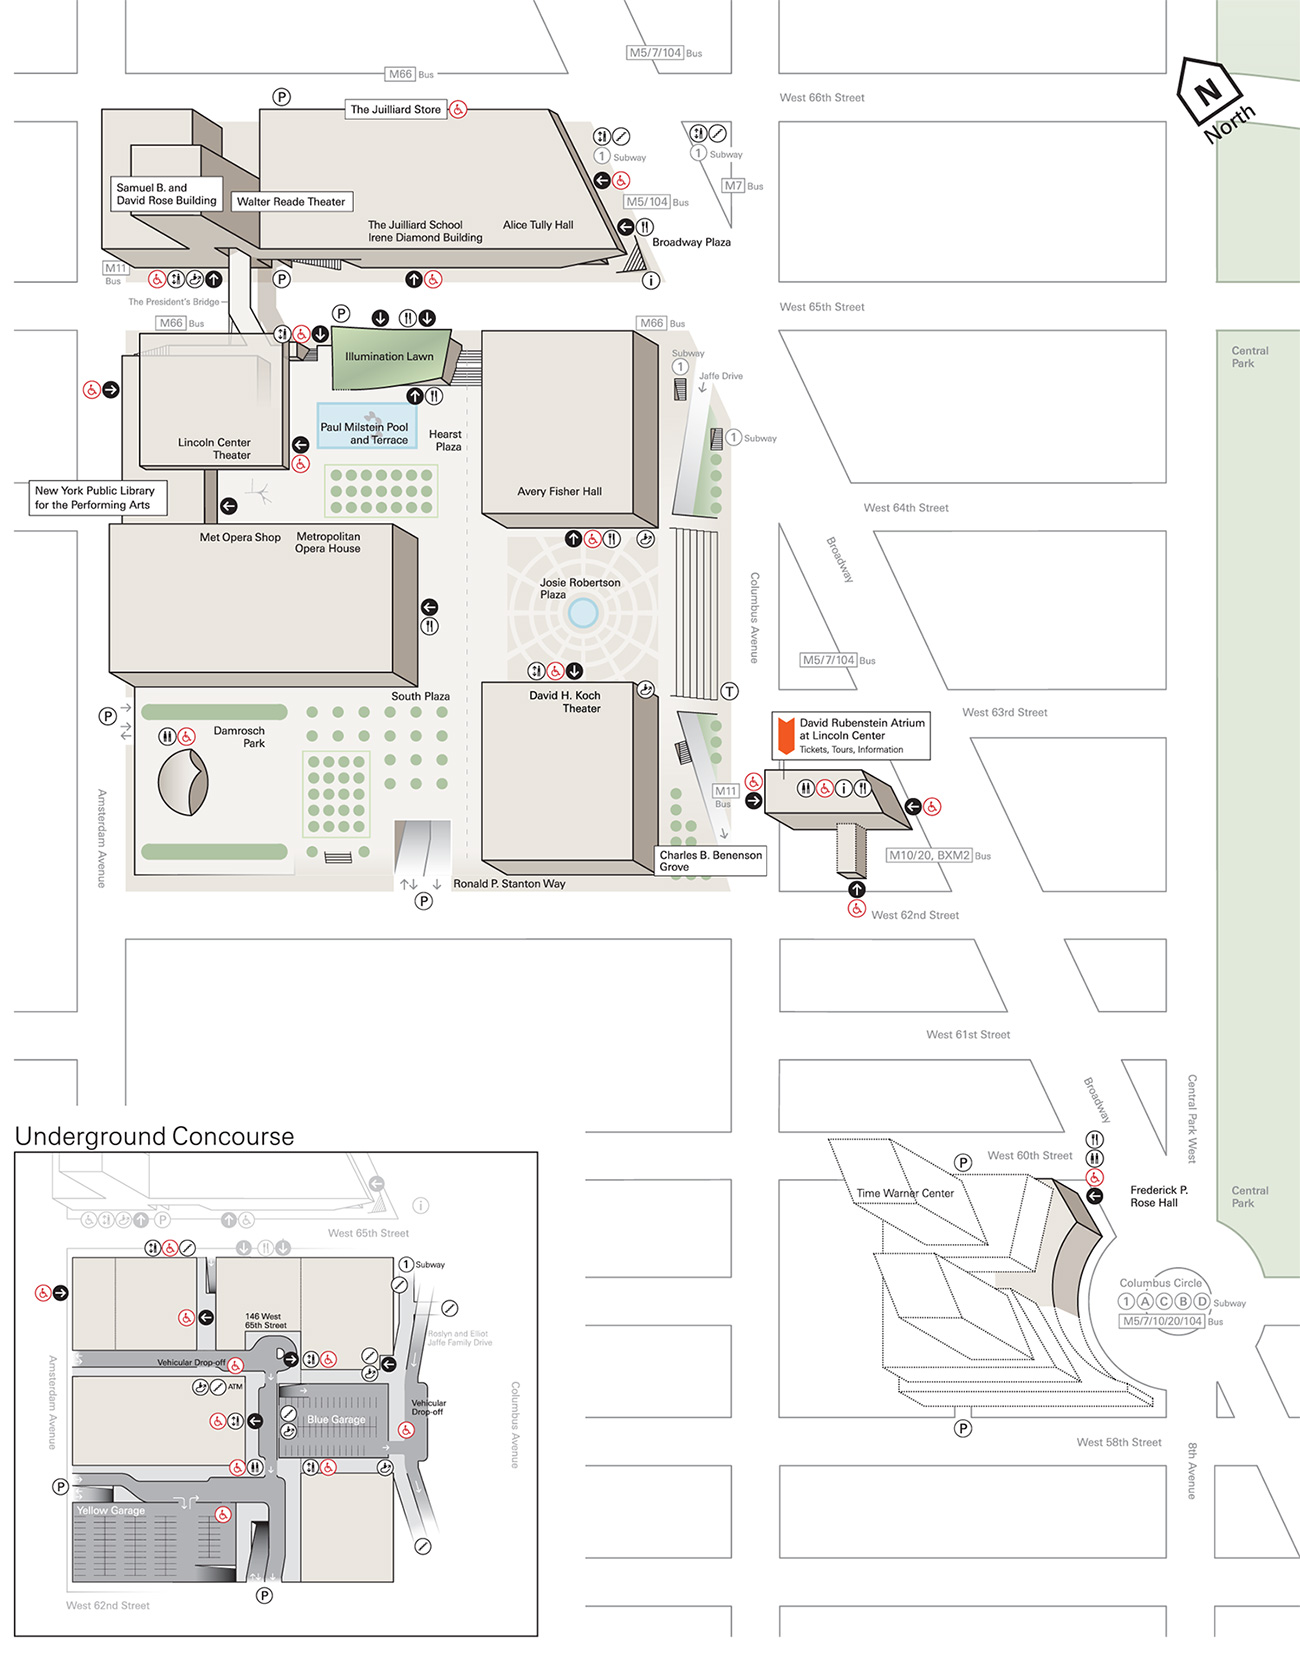 Map of Lincoln Center indicating wheelchair accessible entrances